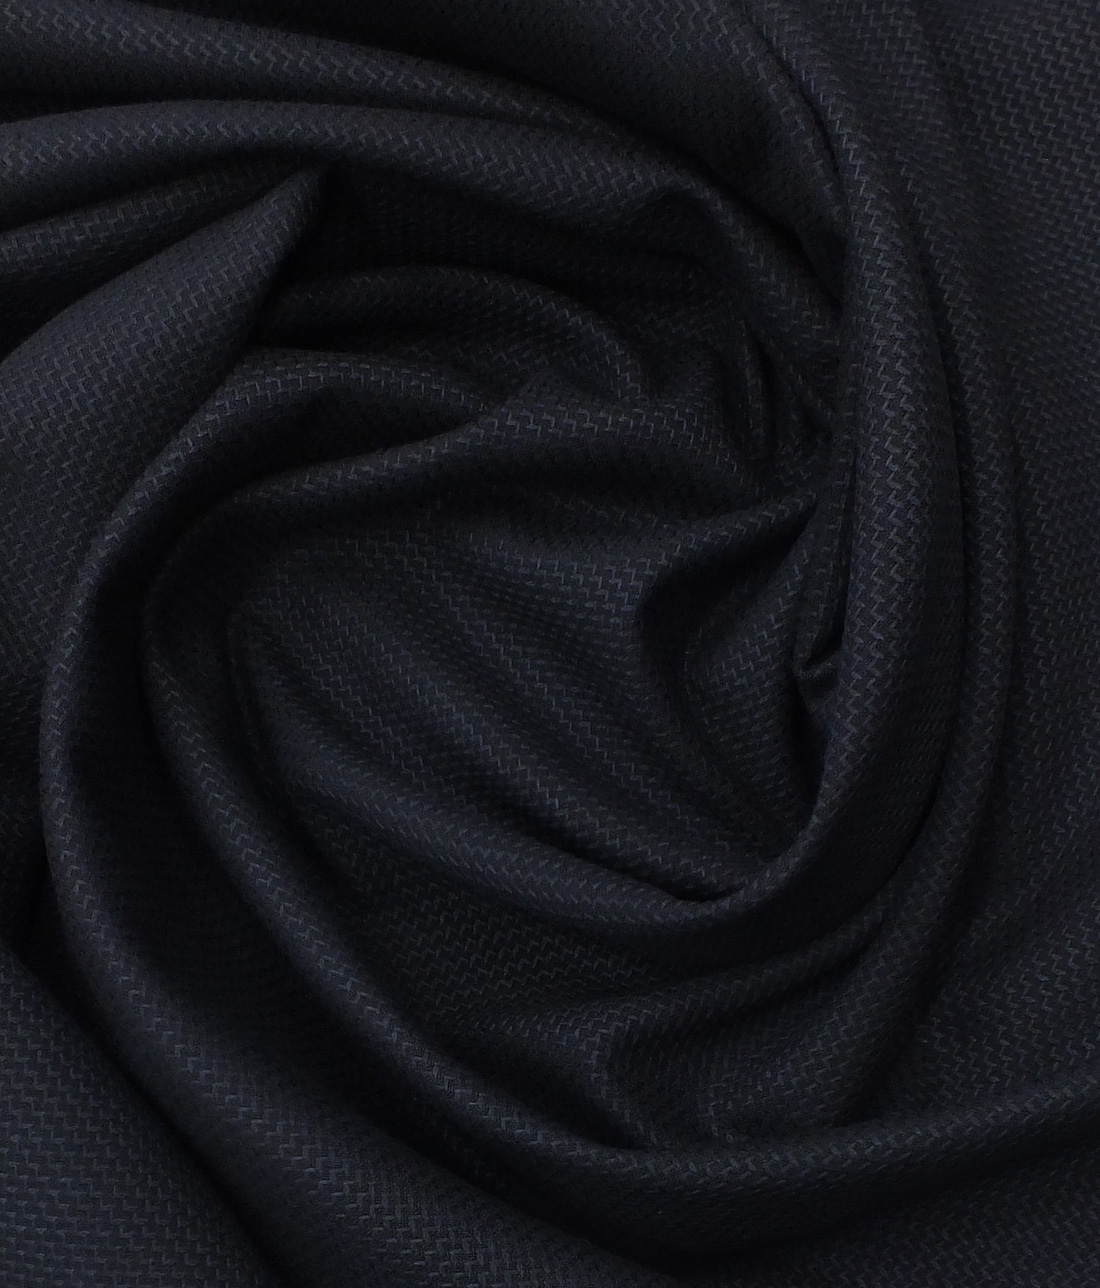 Mark & Peanni Dark Royal Blue Structured Weave Terry Rayon Premium Three Piece Suit Fabric (Unstitched - 3.75 Mtr)